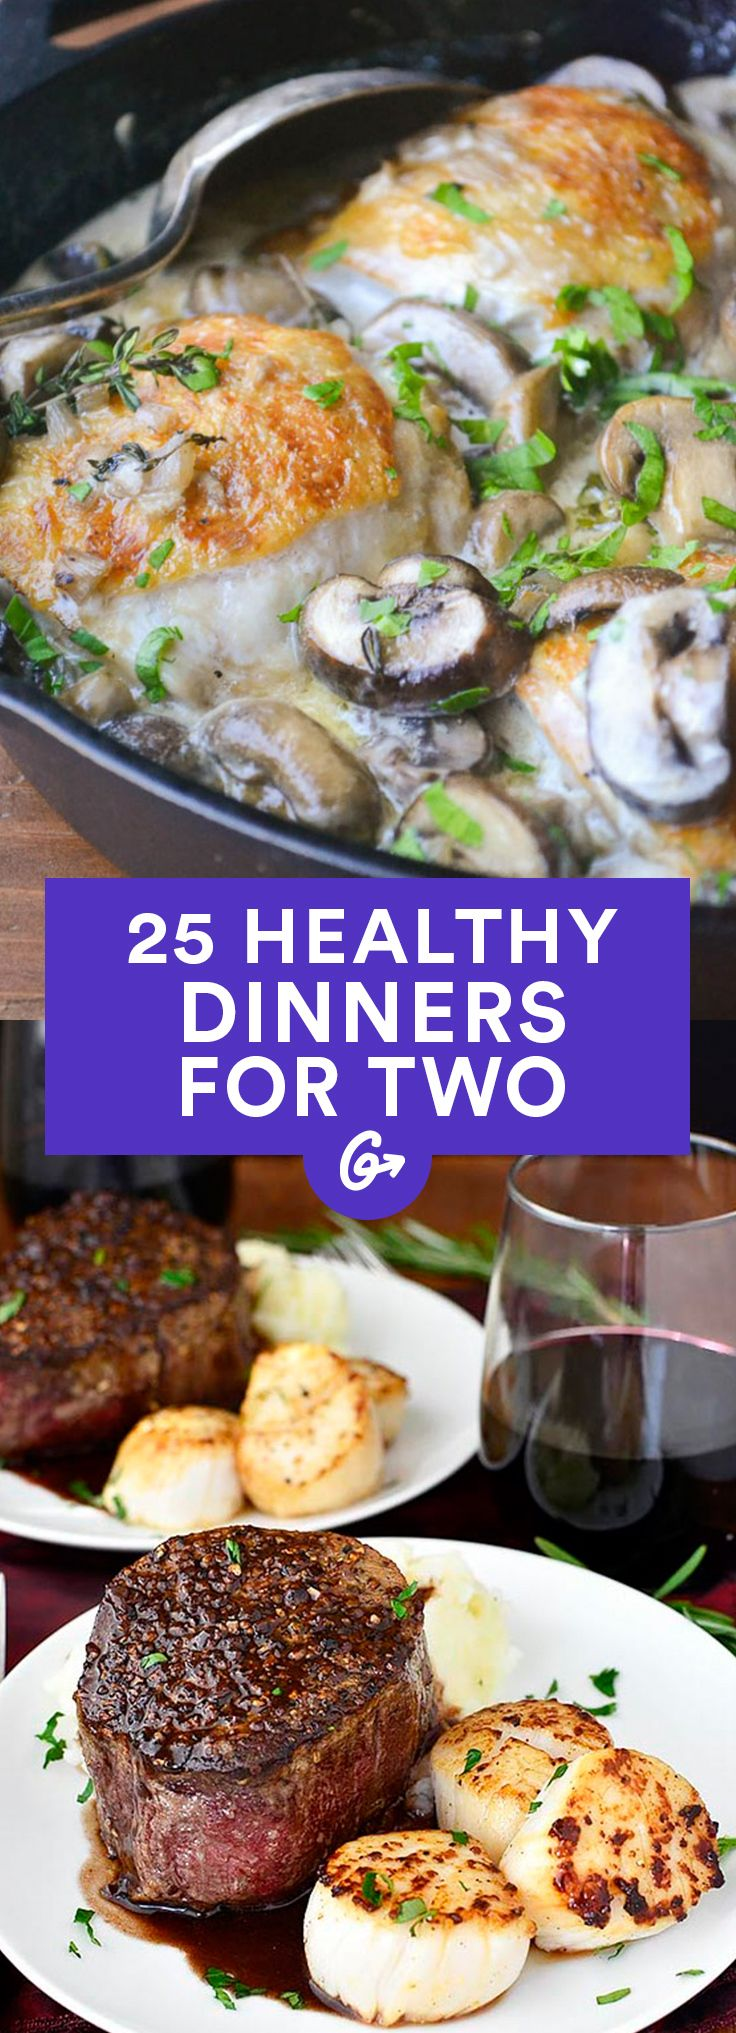 dinner recipes healthy healthy dinner recipes for two easy meal